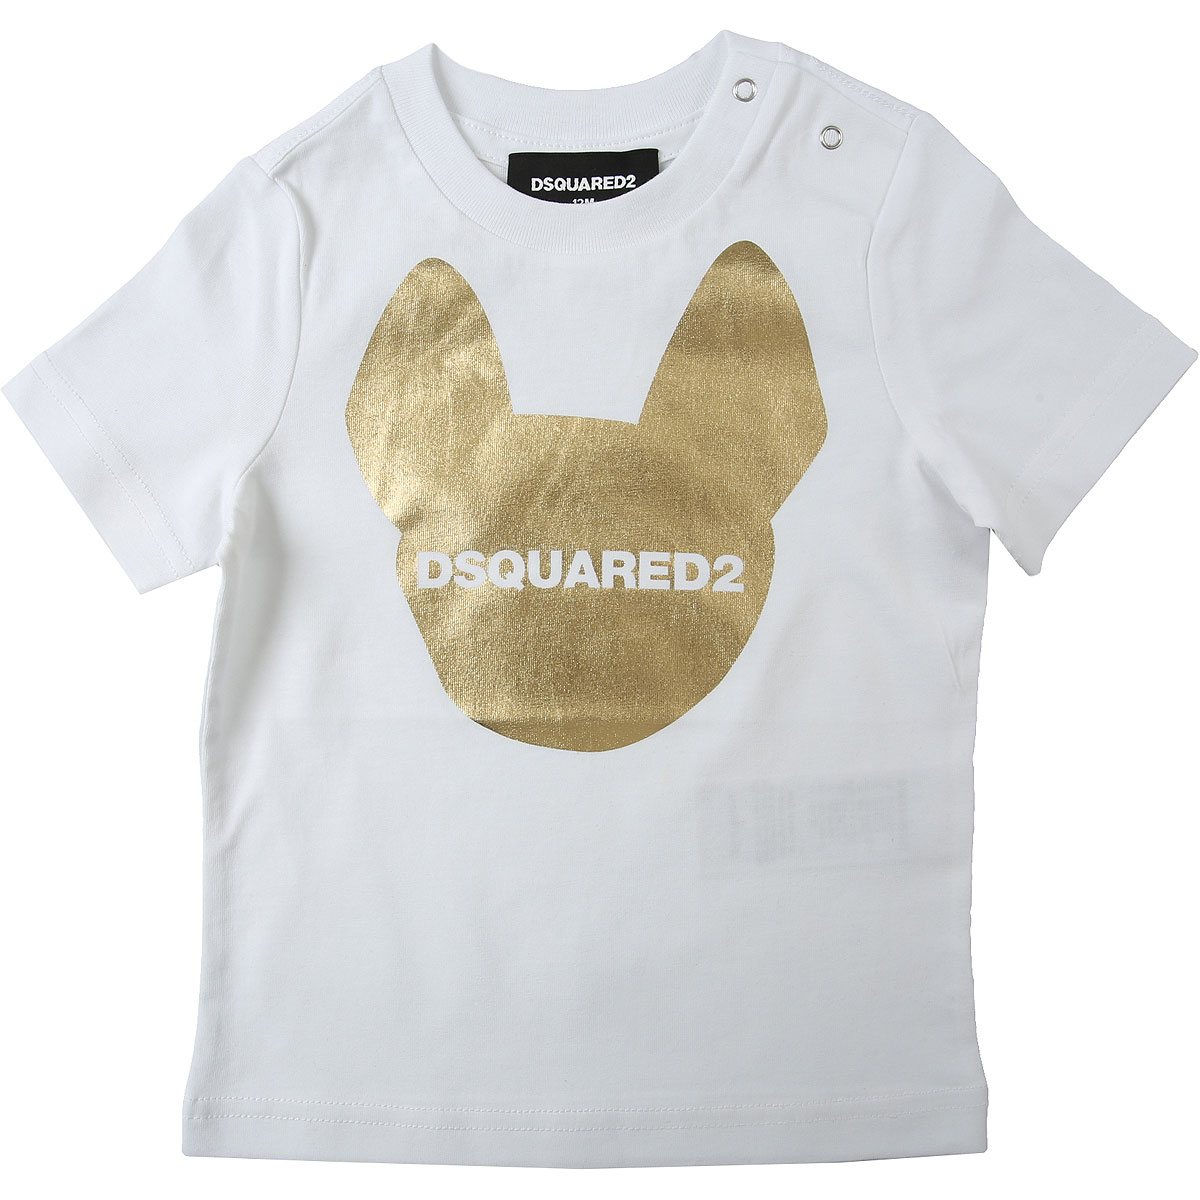 Dsquared2 Baby T-Shirt for Girls On Sale, White, Cotton, 2019, 12M 18M 6M 9M